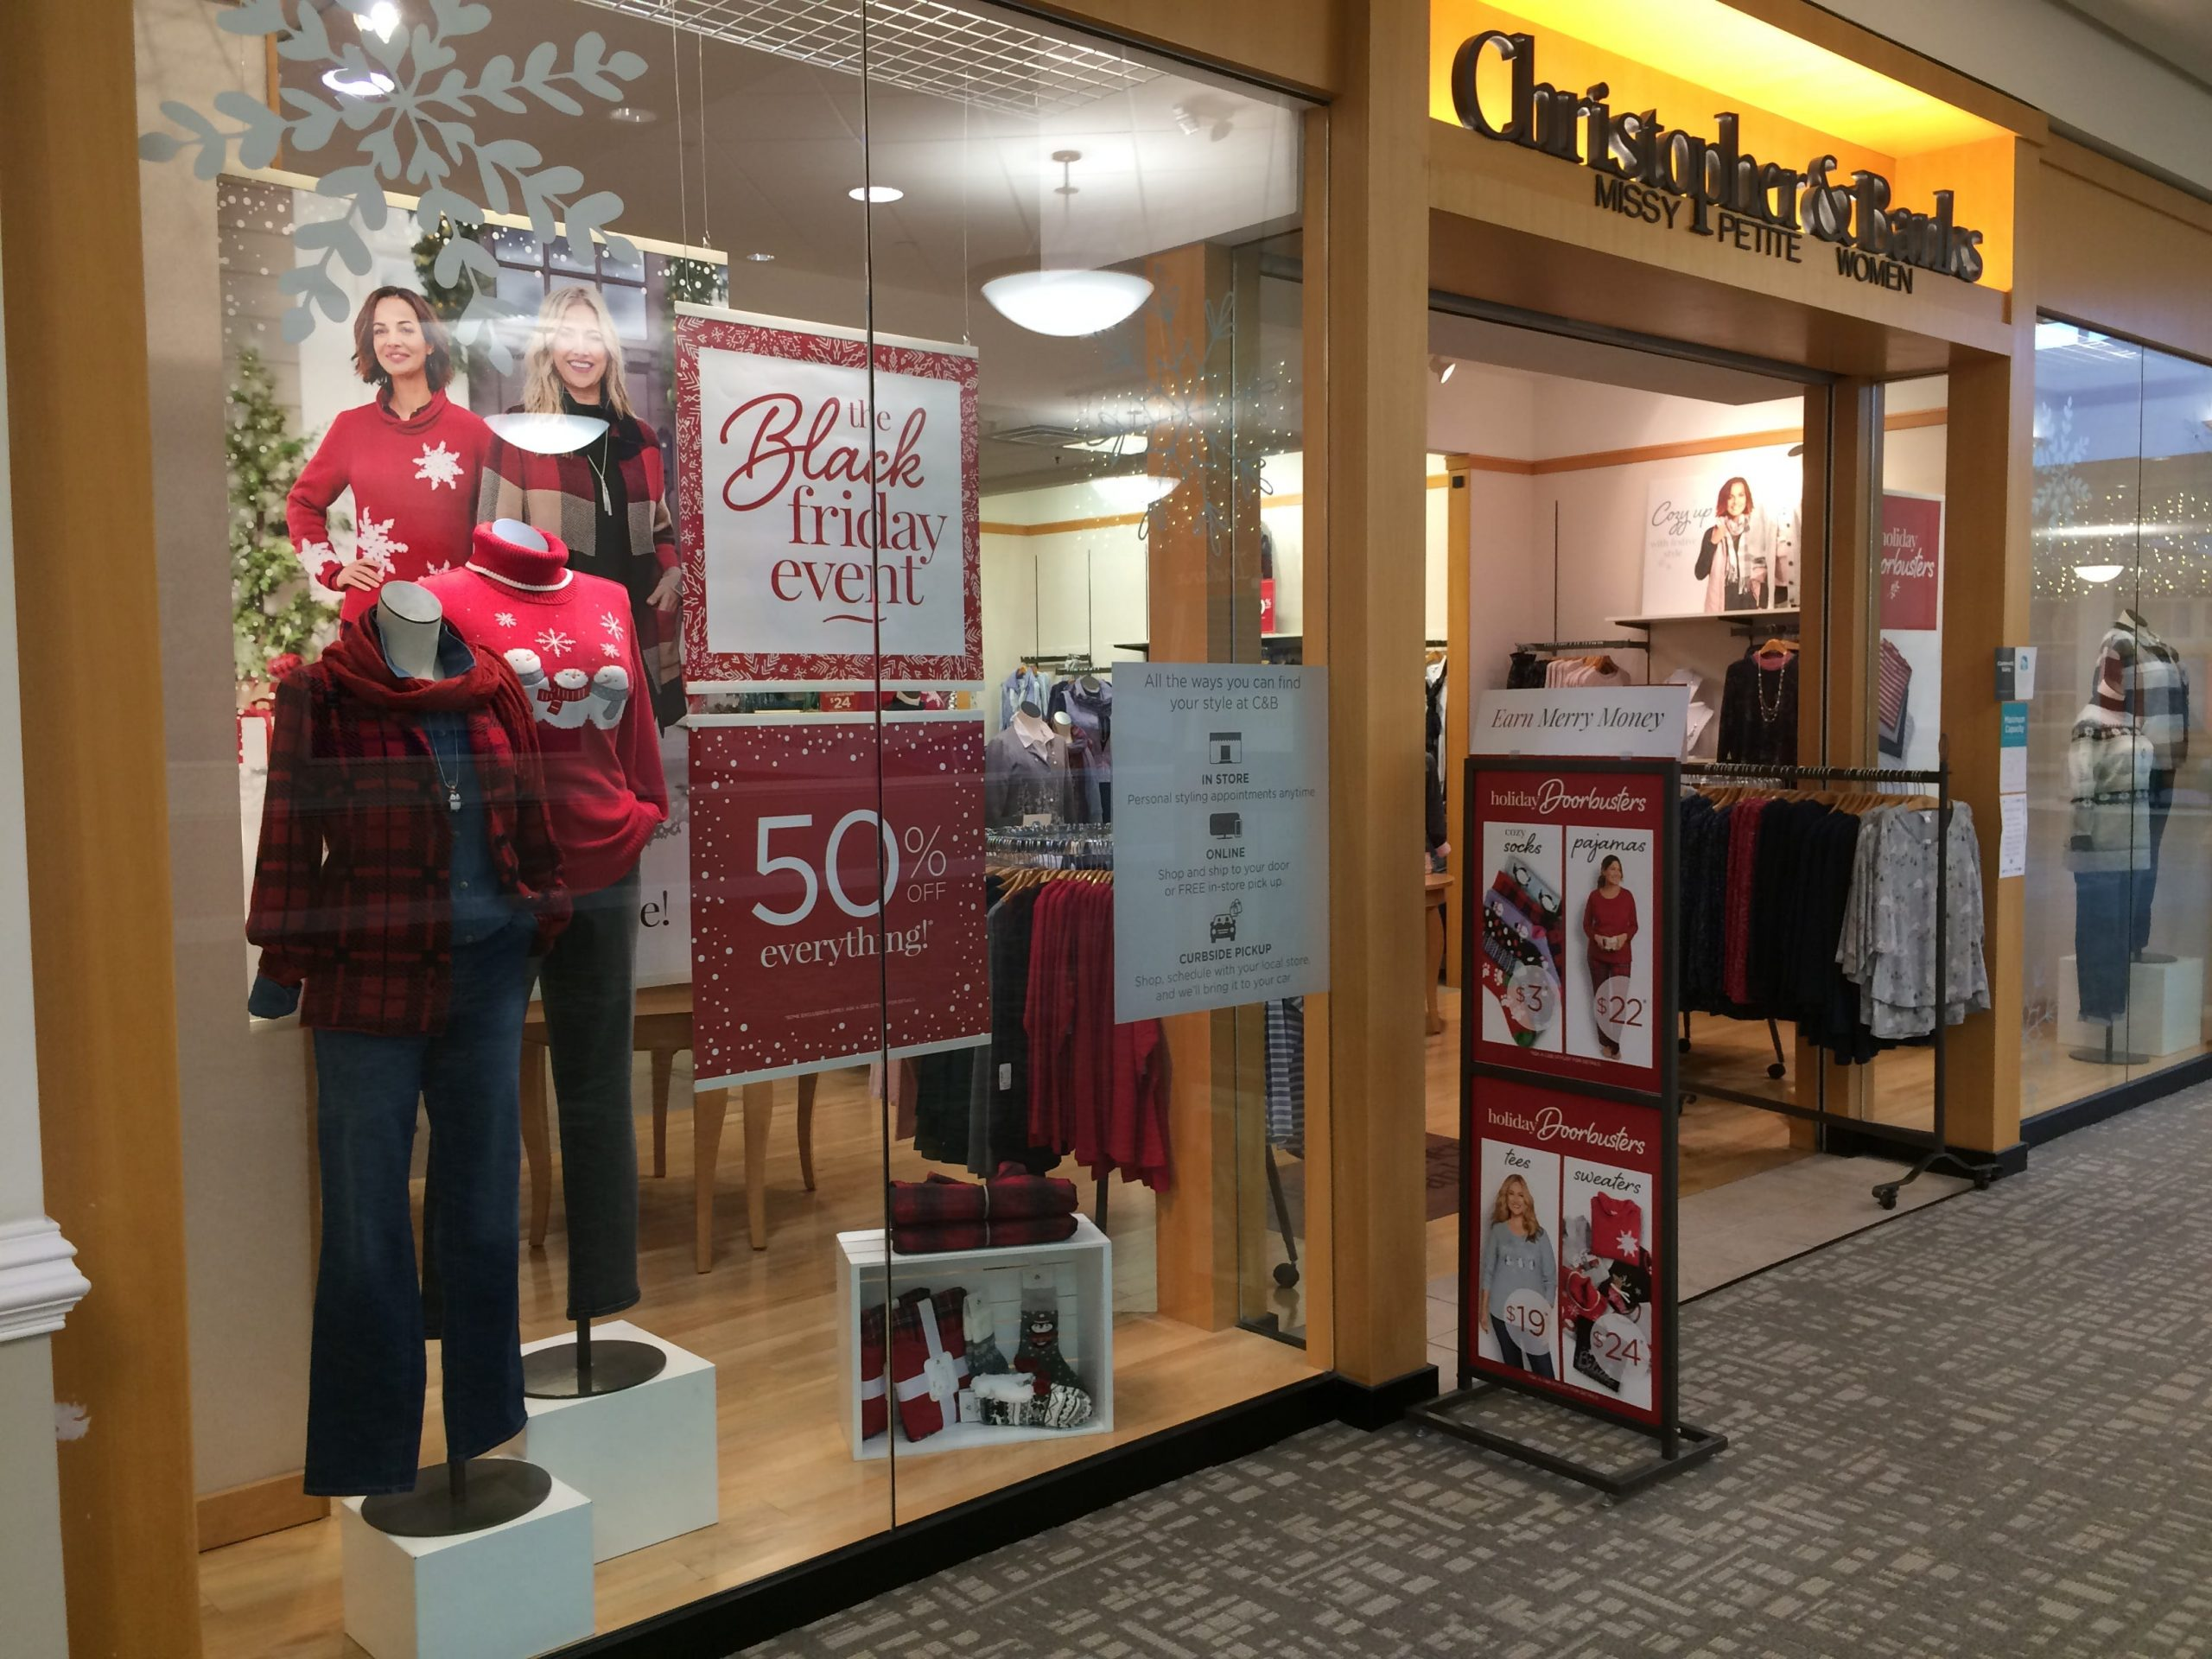 Christopher & Banks files for bankruptcy protection and says it could close all stores amid COVID-19